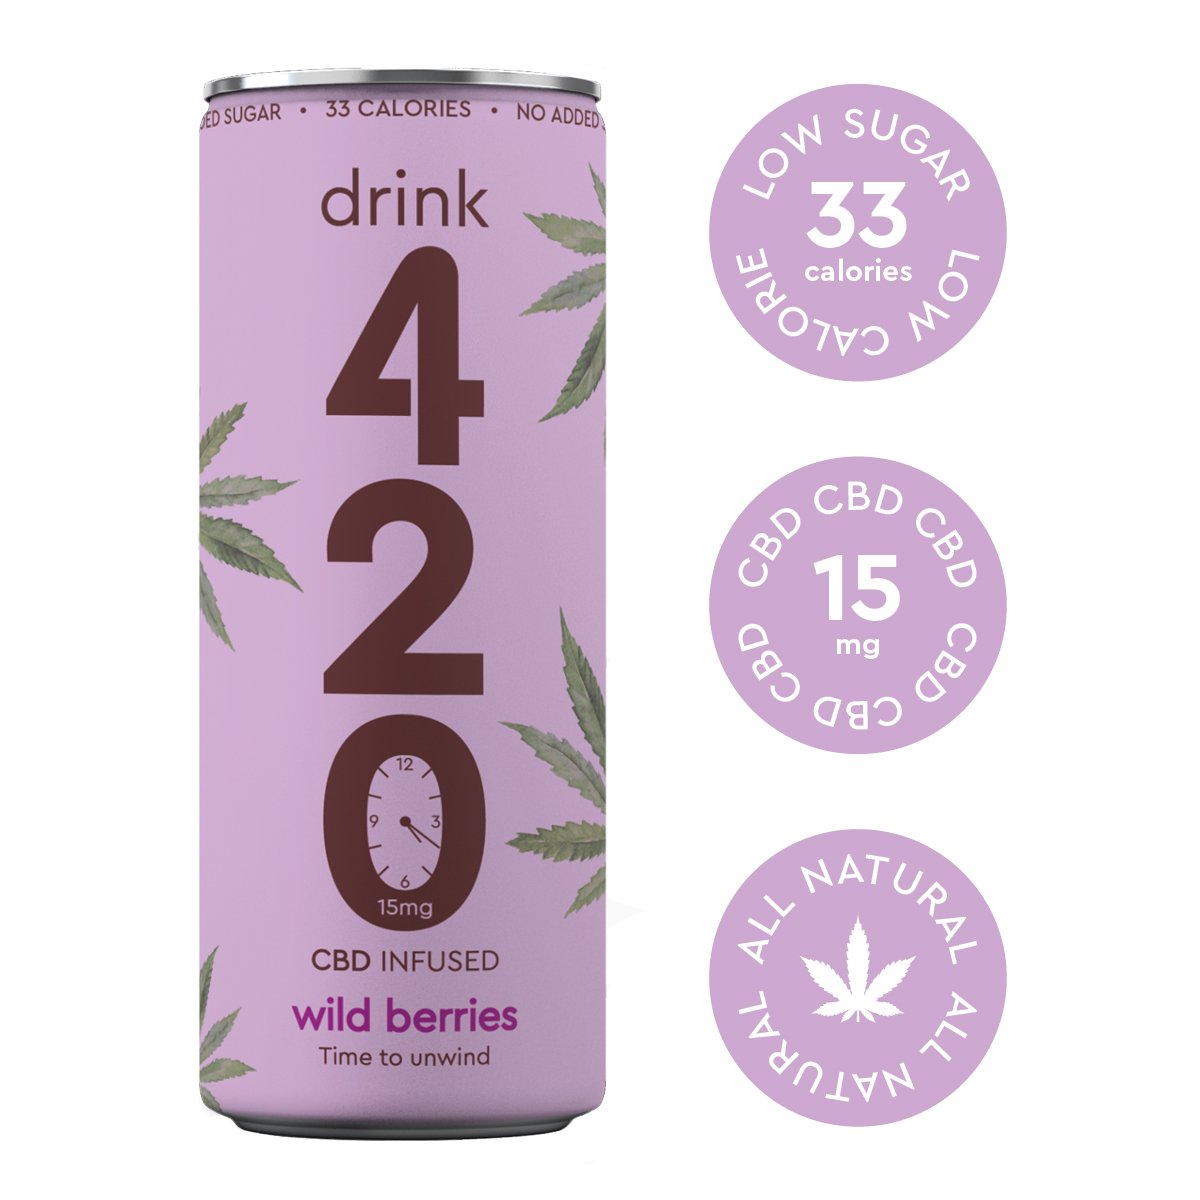 Drink 420 CBD 15mg